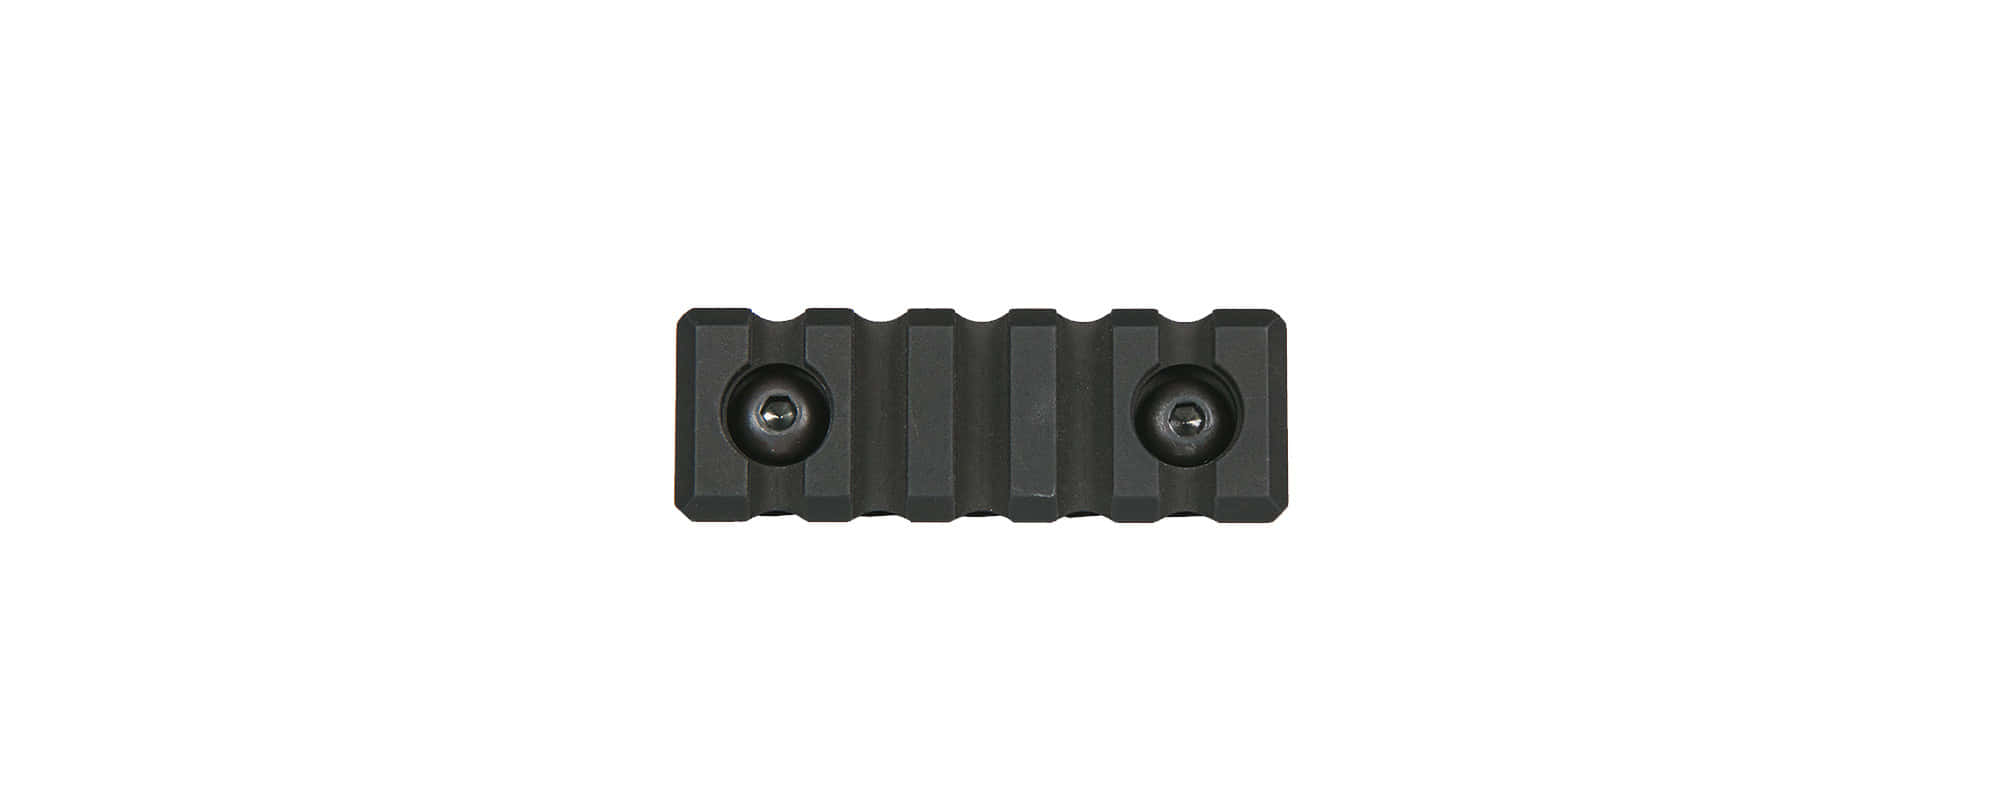 DDZ005-M-LOK rail section (21mm) - DDZ005